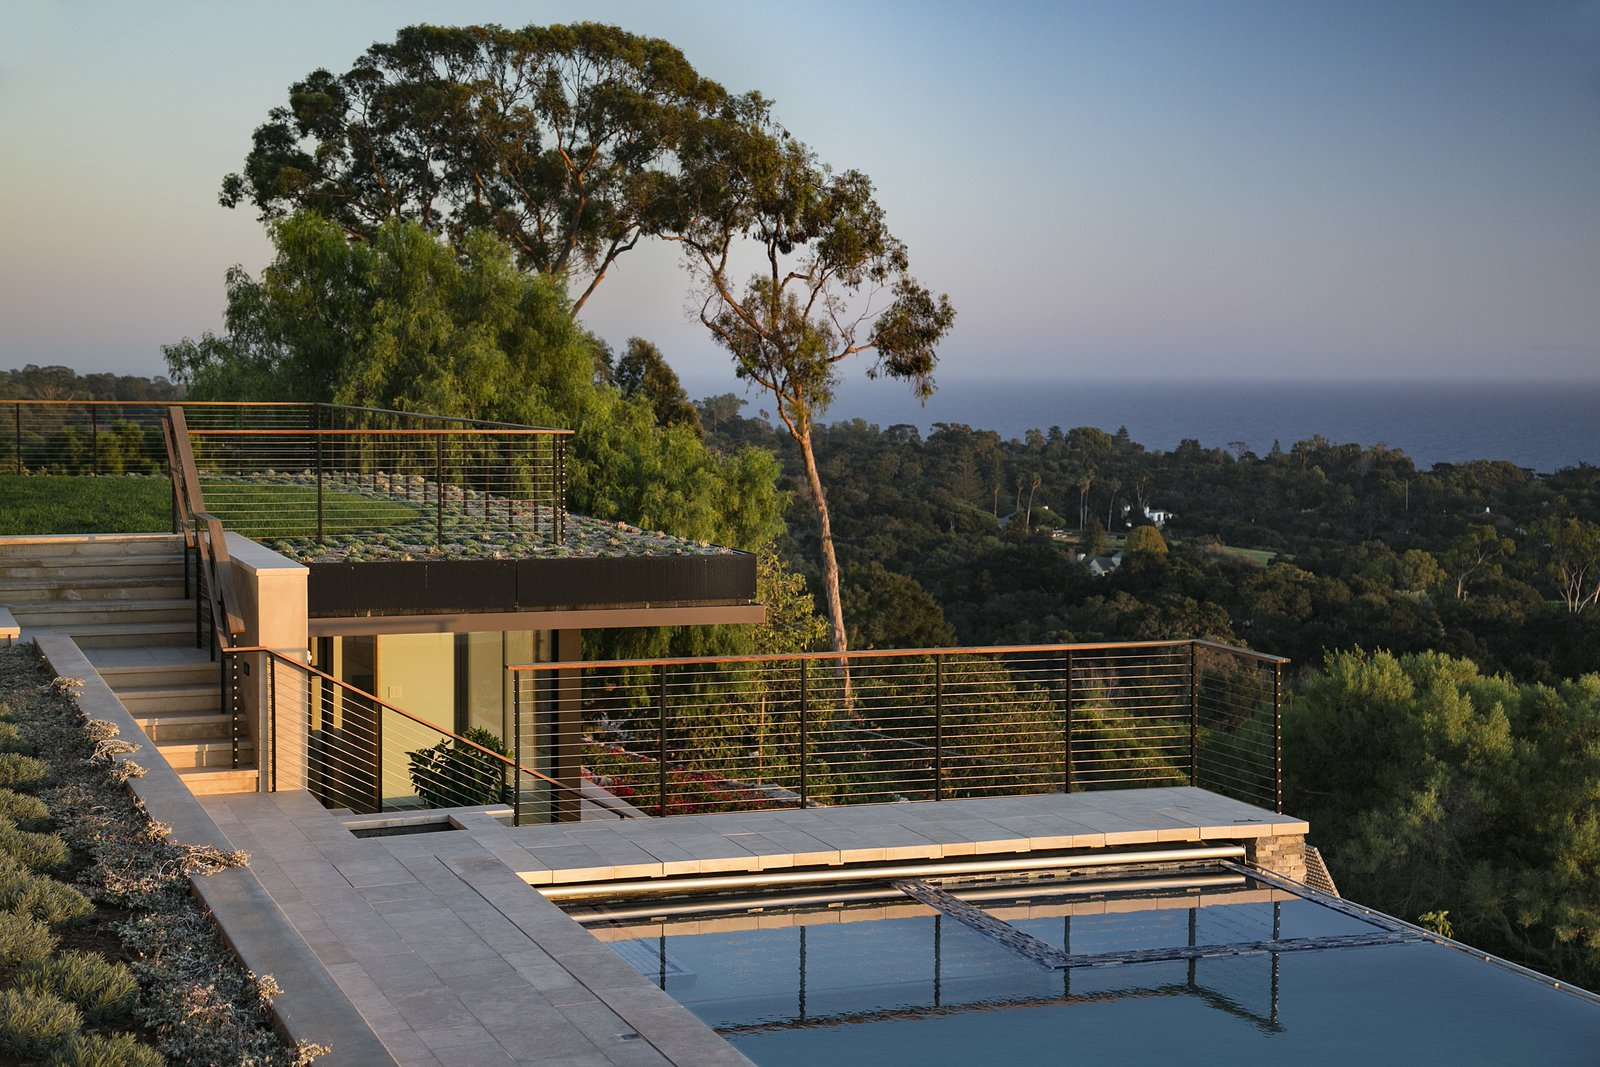 Outdoor, Large Pools, Tubs, Shower, Back Yard, Walkways, Grass, and Infinity Pools, Tubs, Shower  Best Photos from Hope Ranch Residence